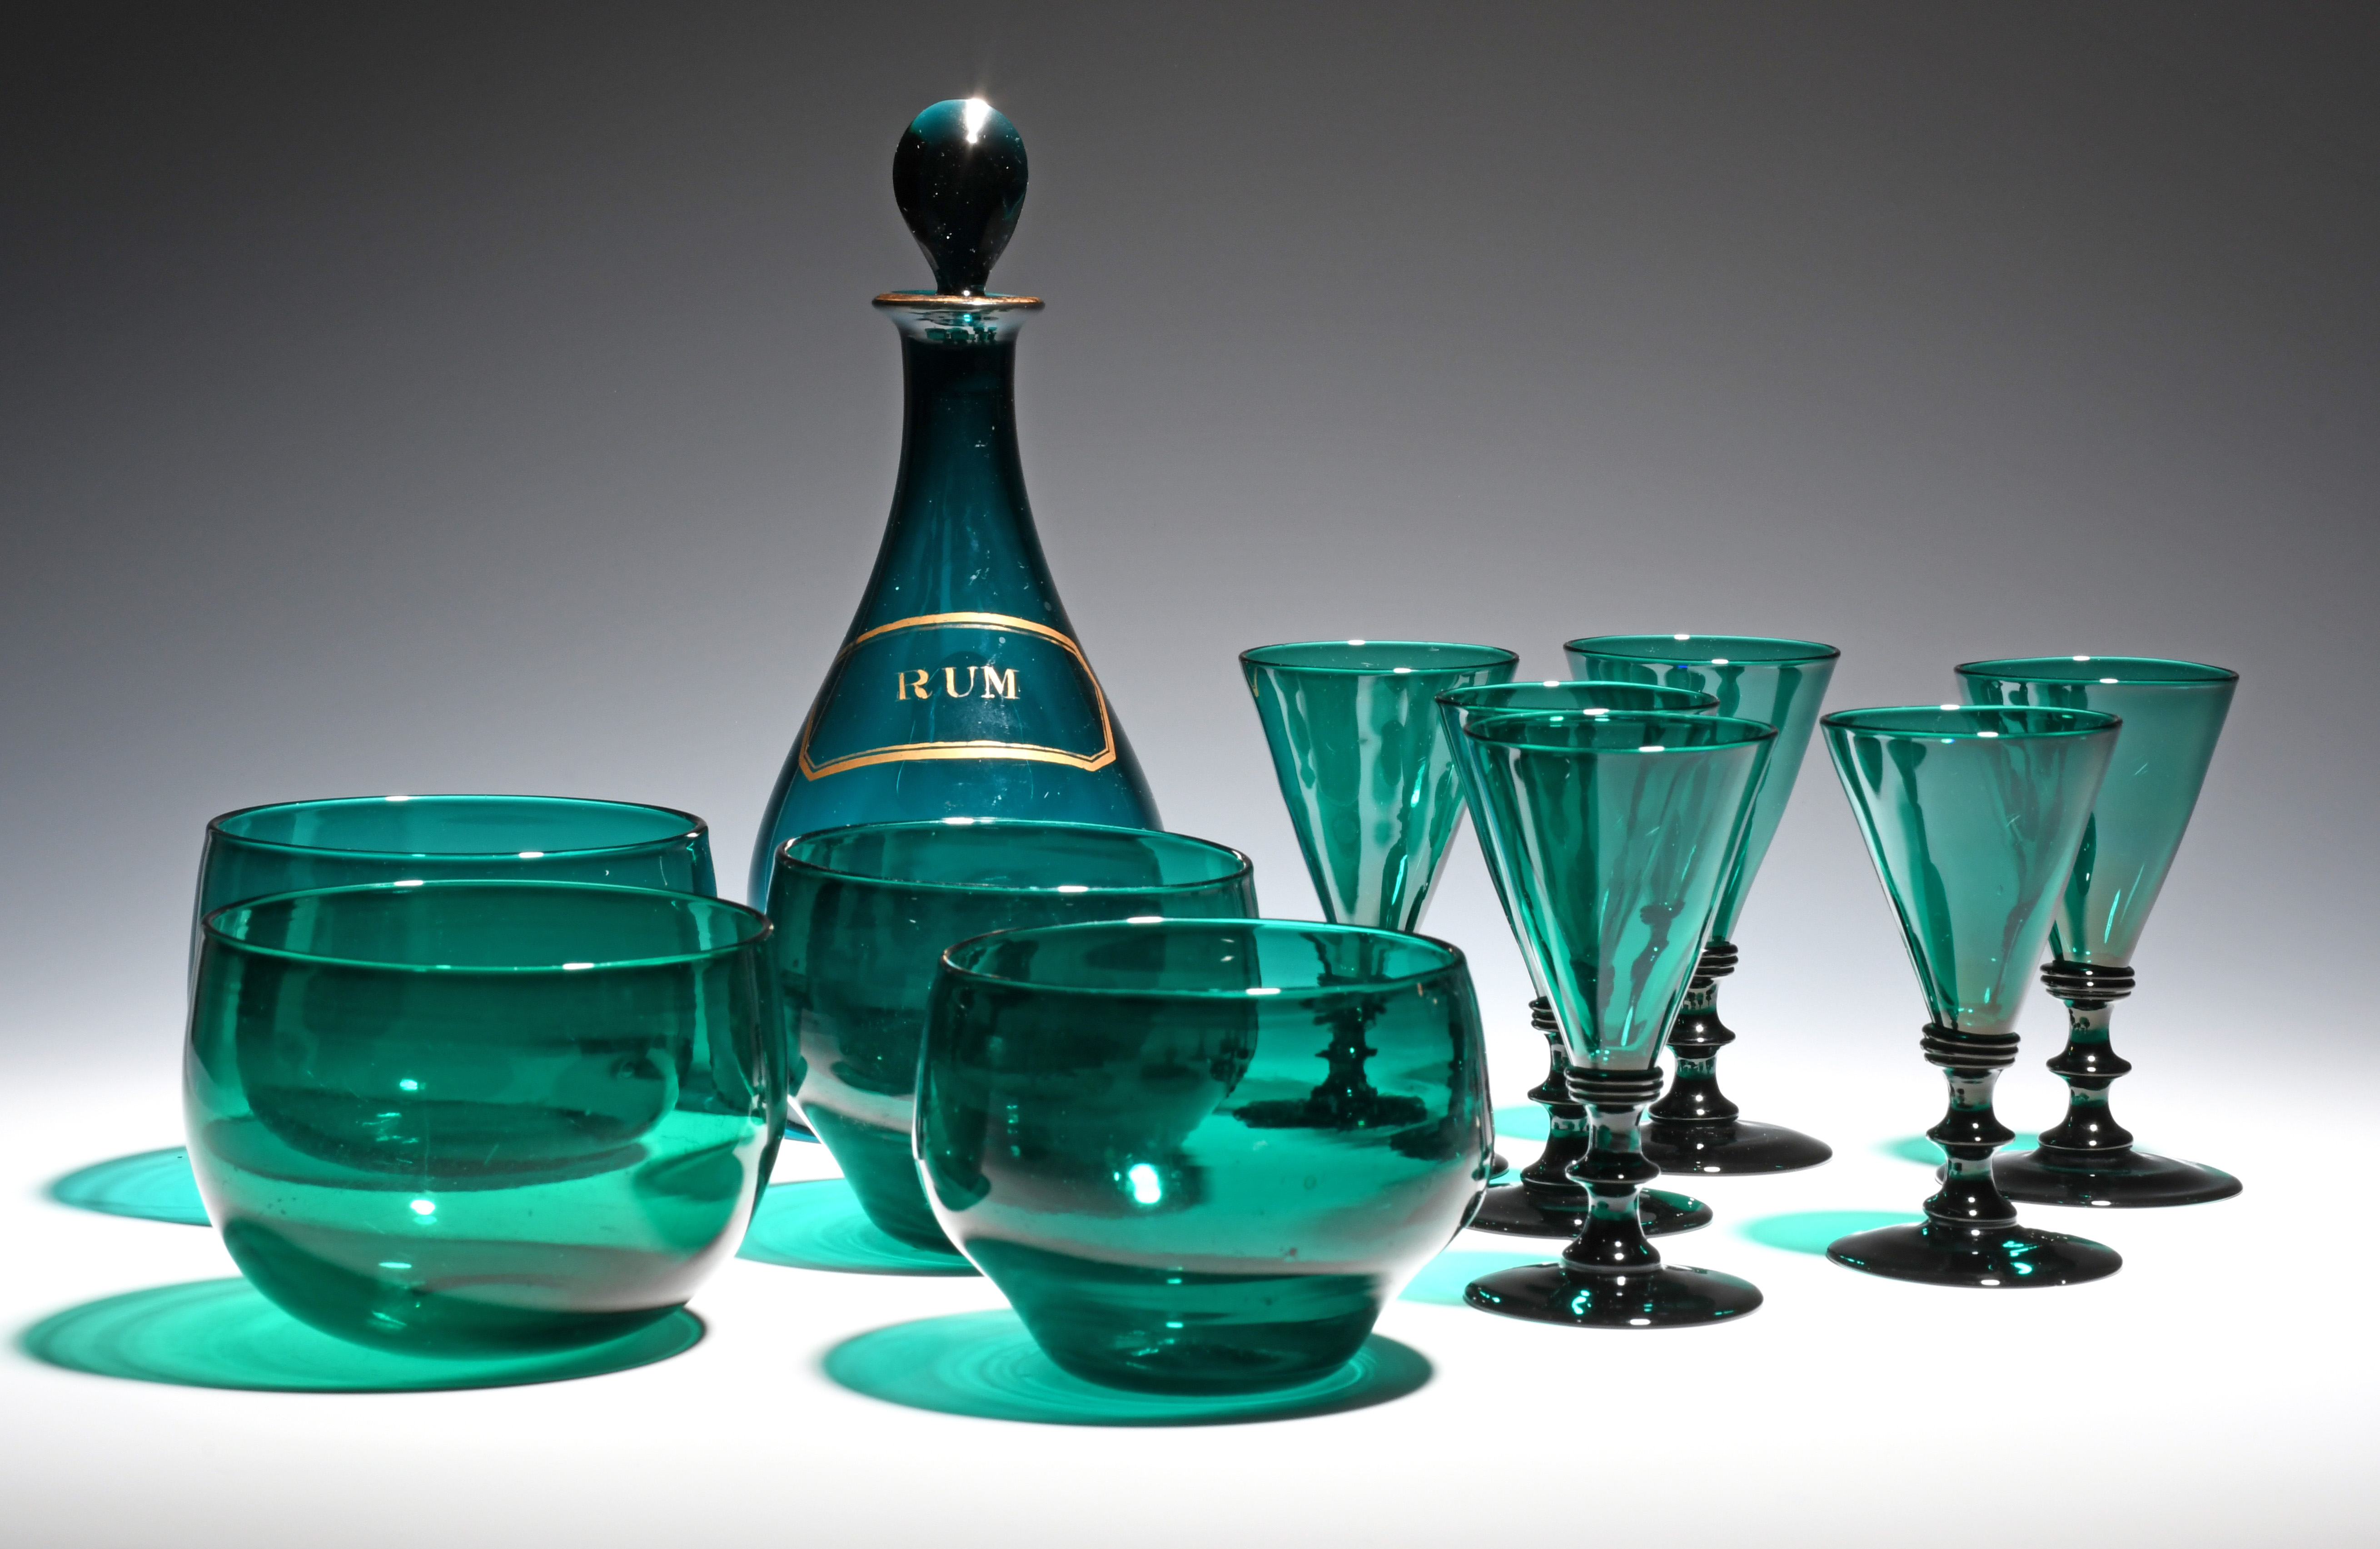 Six green wine glasses c.1800, with flared bowls raised on knopped and collared stems, a green glass